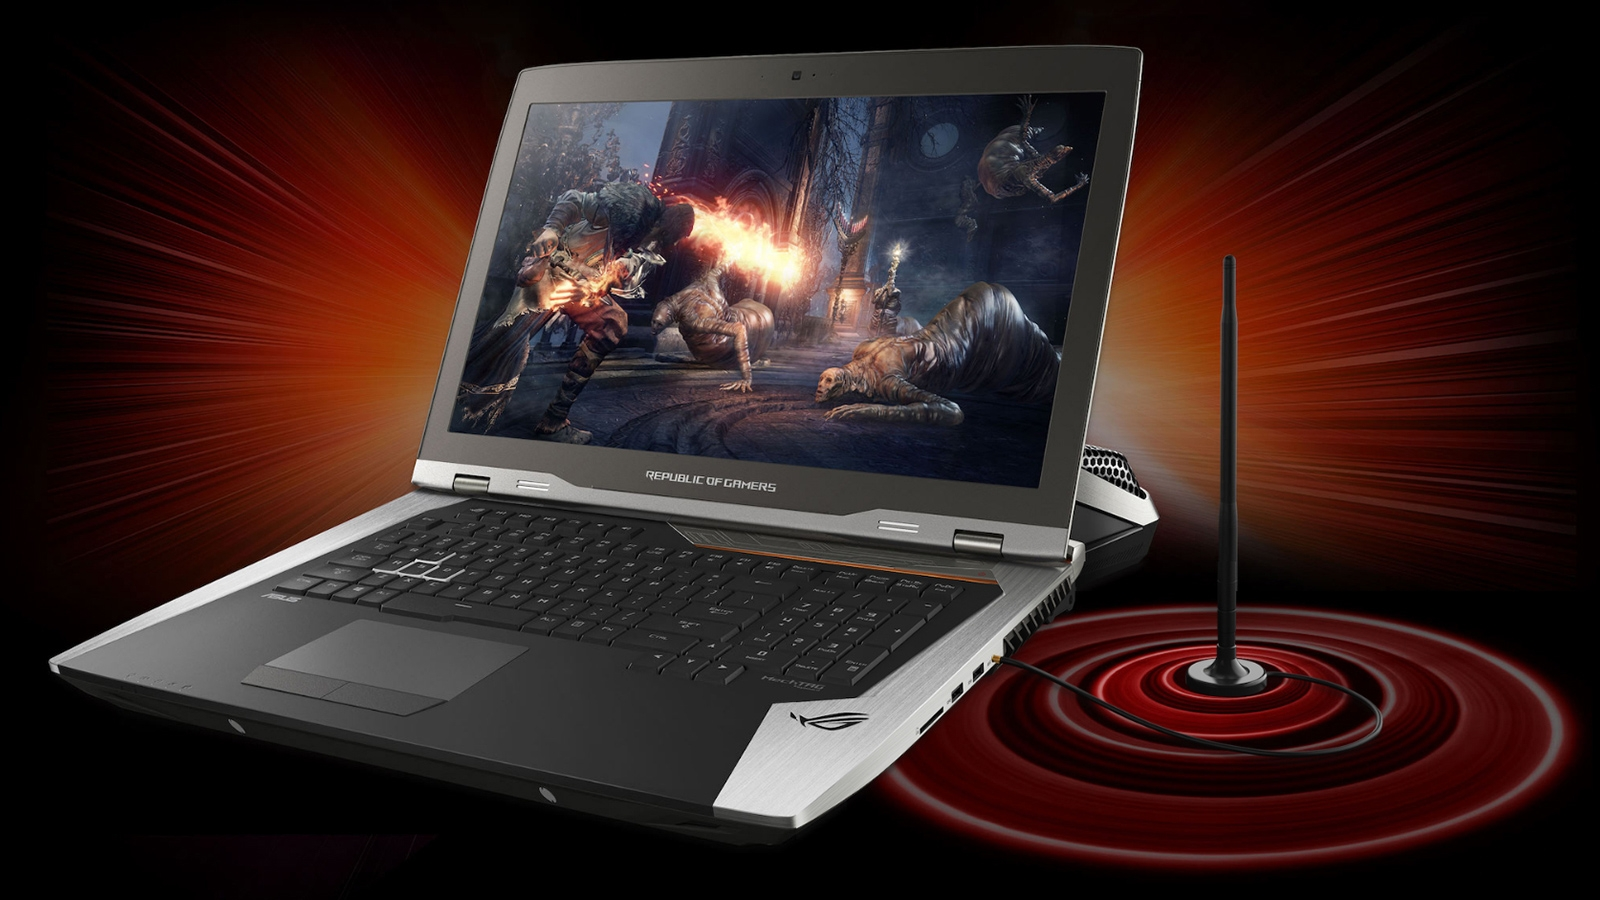 ASUS GX800 WINDOWS 10 DRIVERS DOWNLOAD